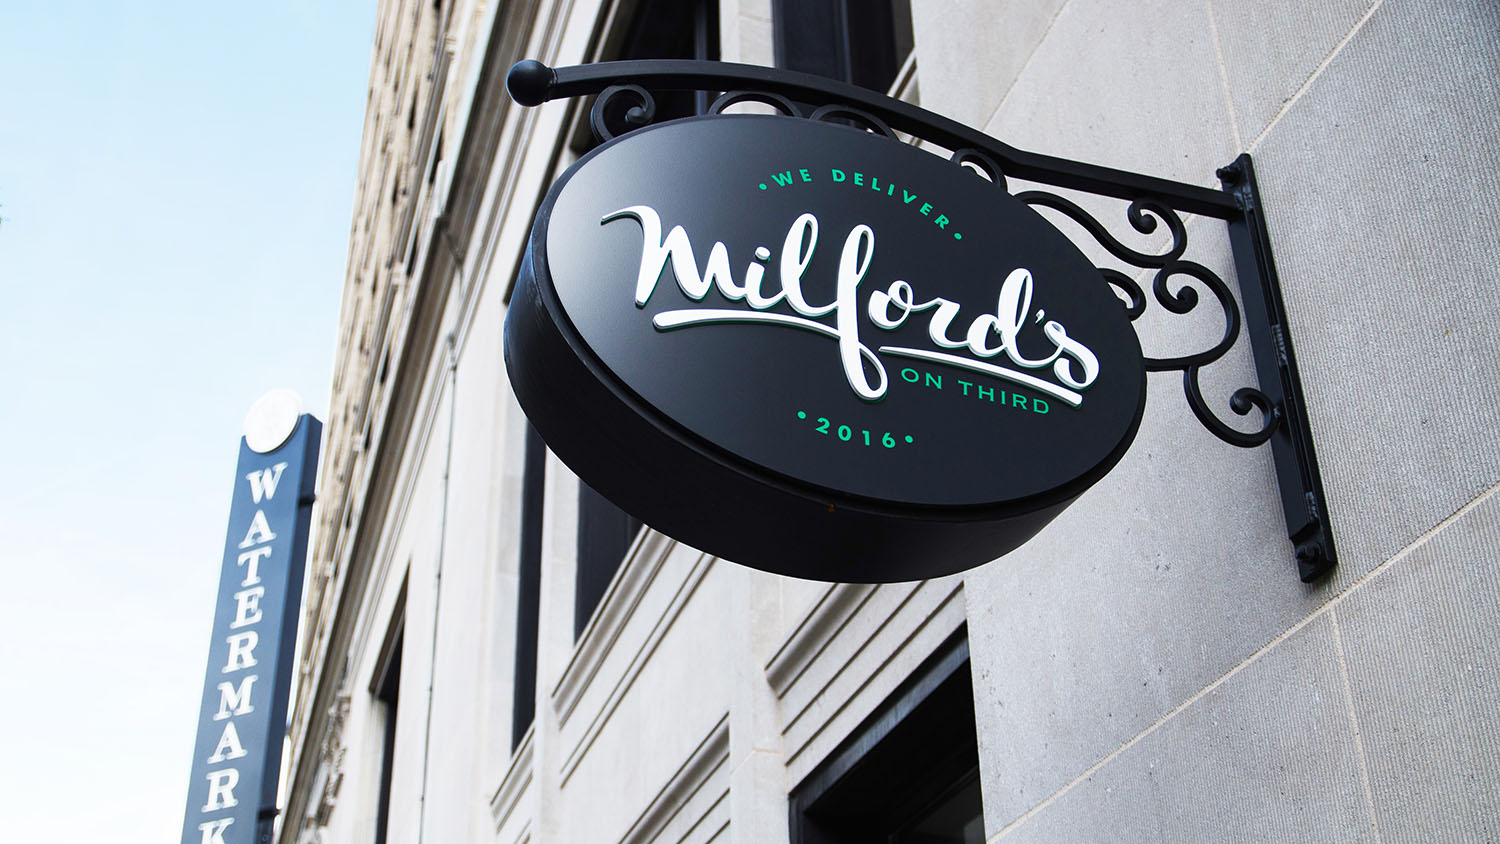 Milford's | Signage